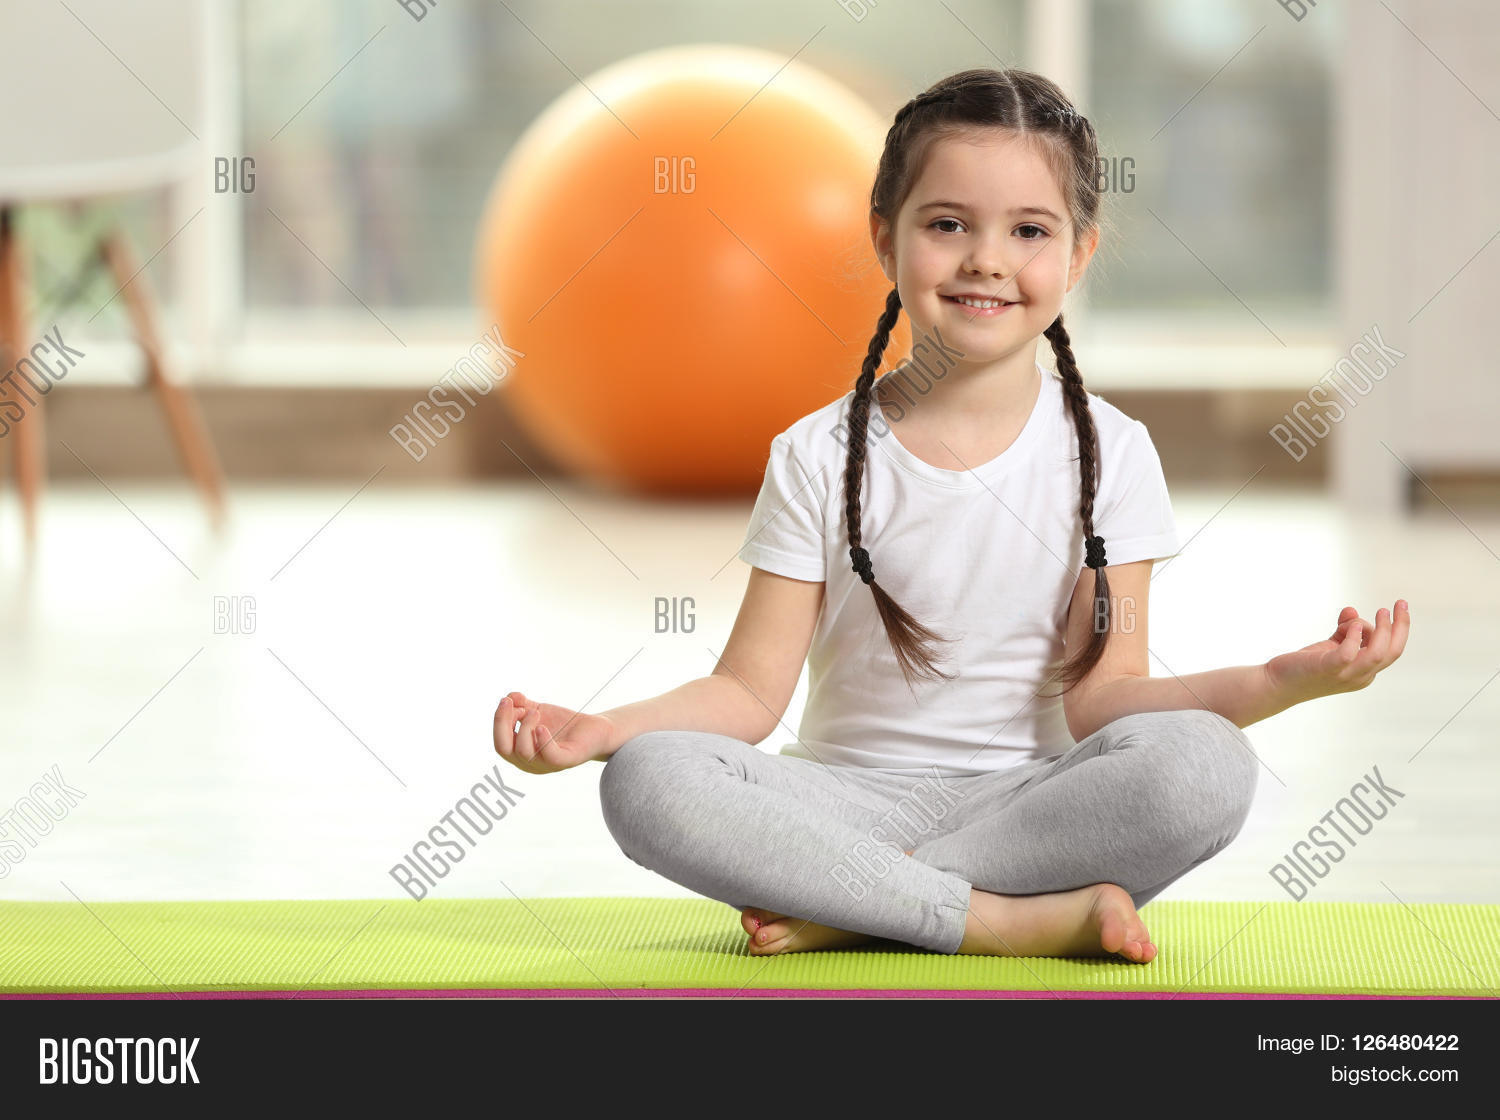 Little Cute Girl Practicing Yoga Pose On A Mat Indoor